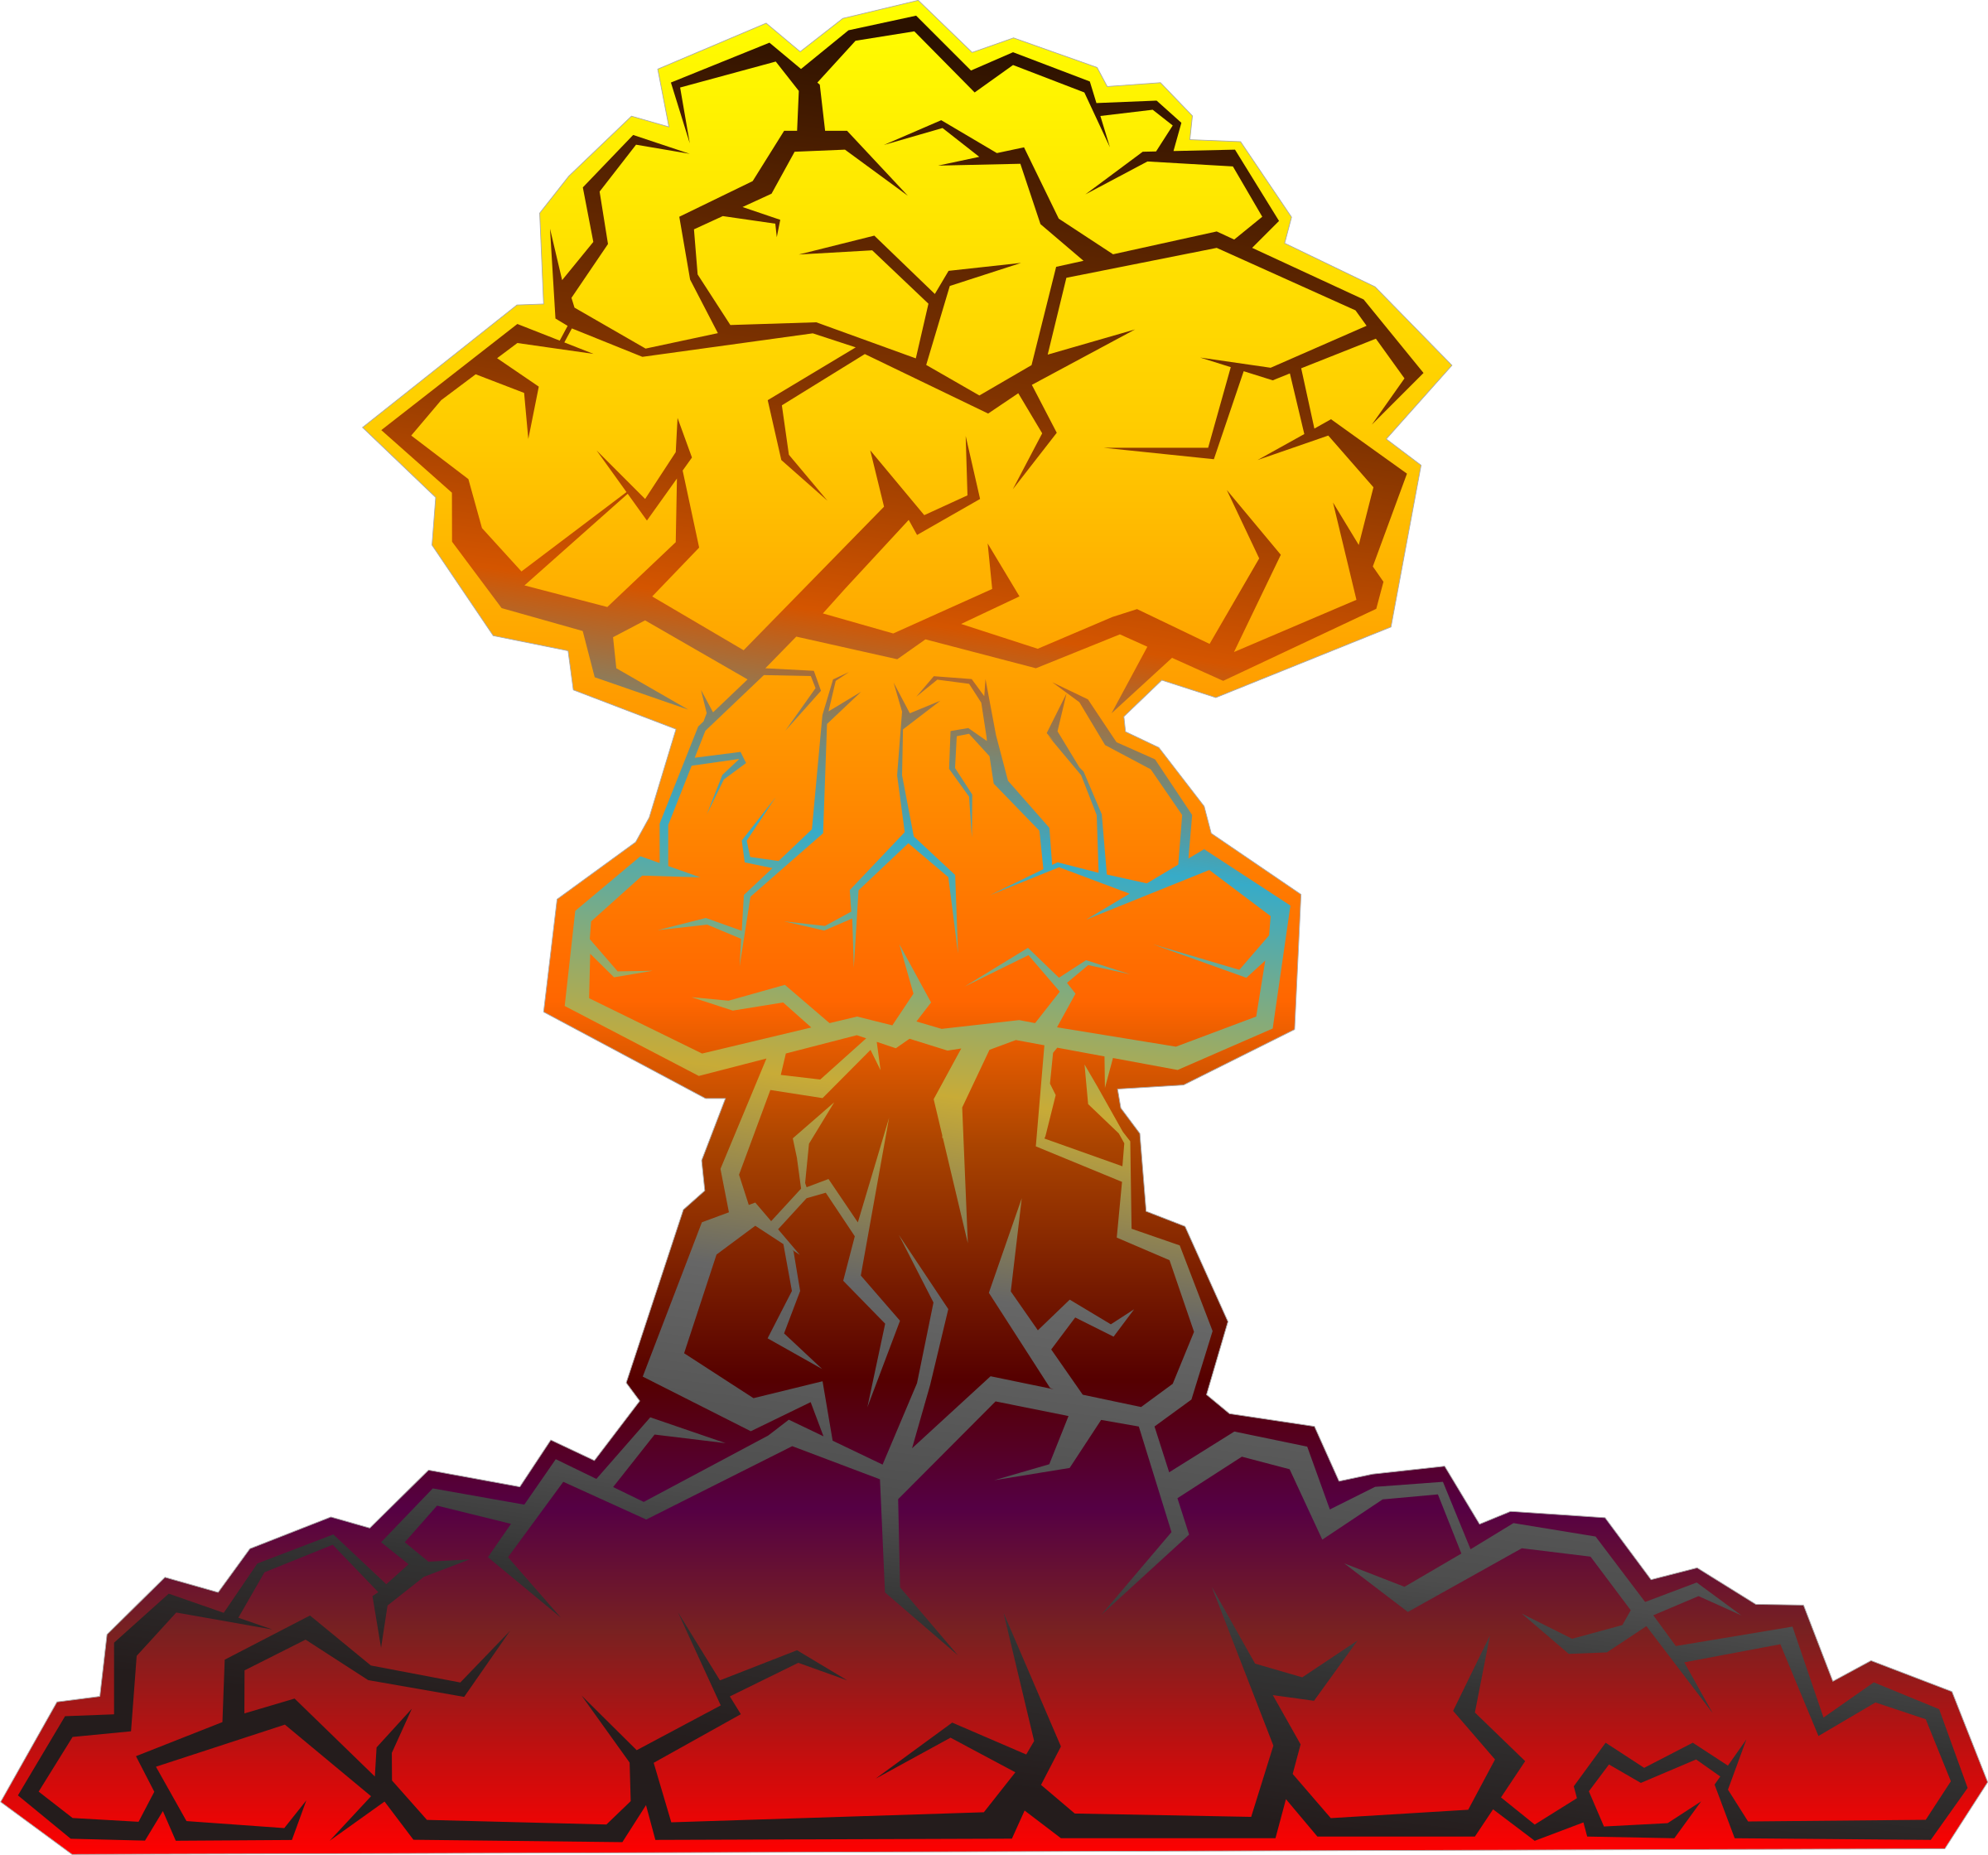 Nuclear Explosion by kg